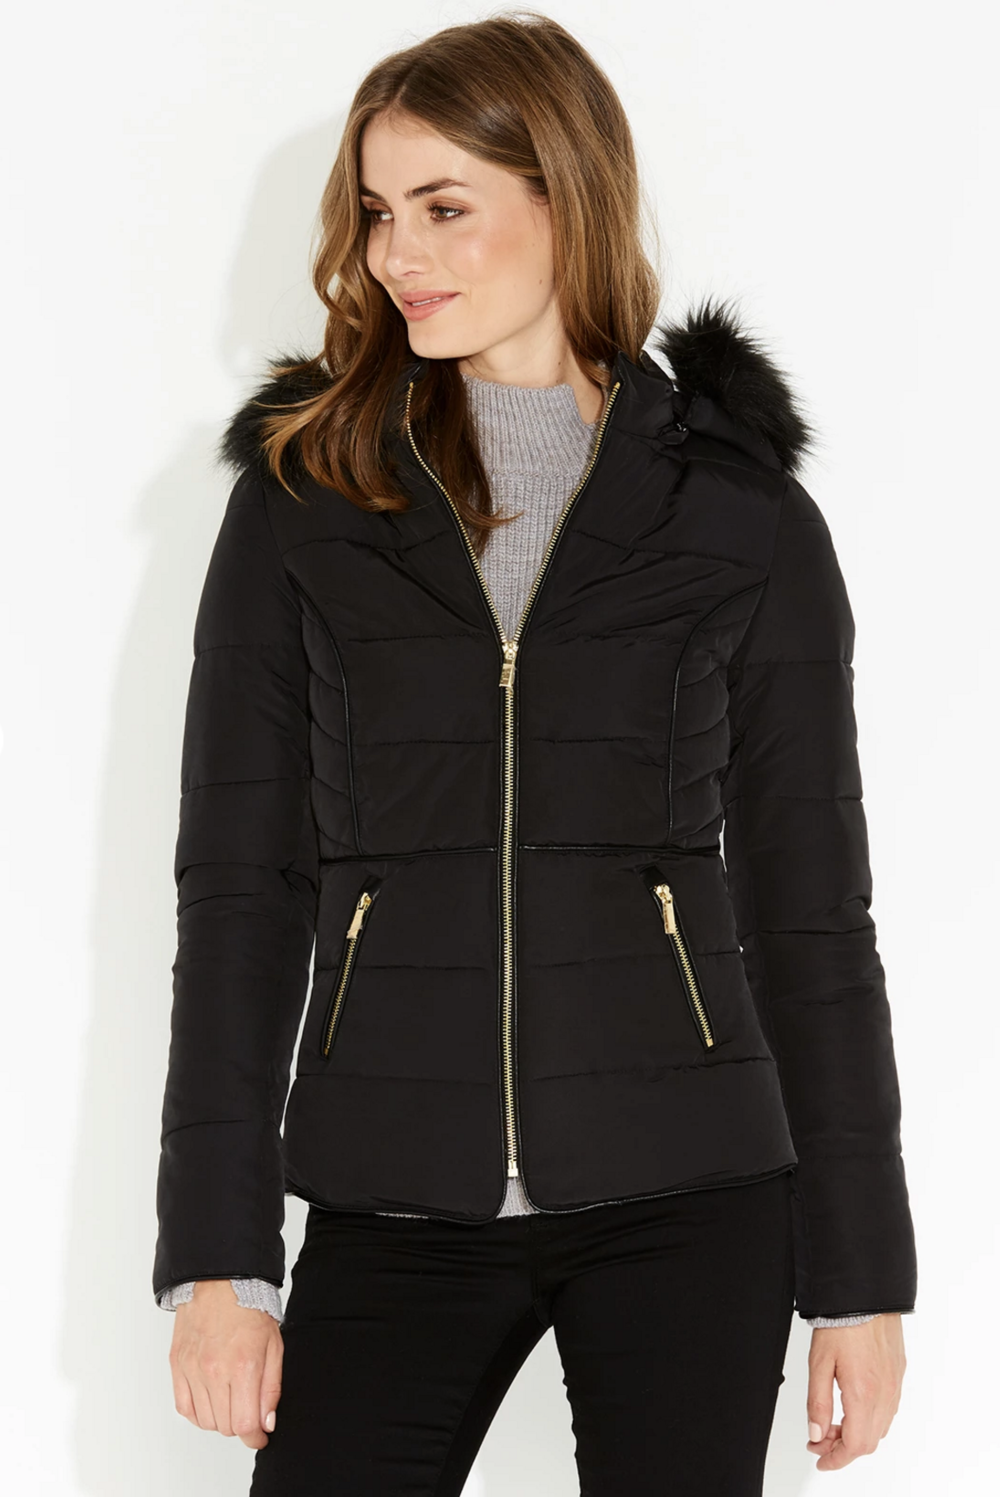 Portmans Suzy short puffer jacket $129.95